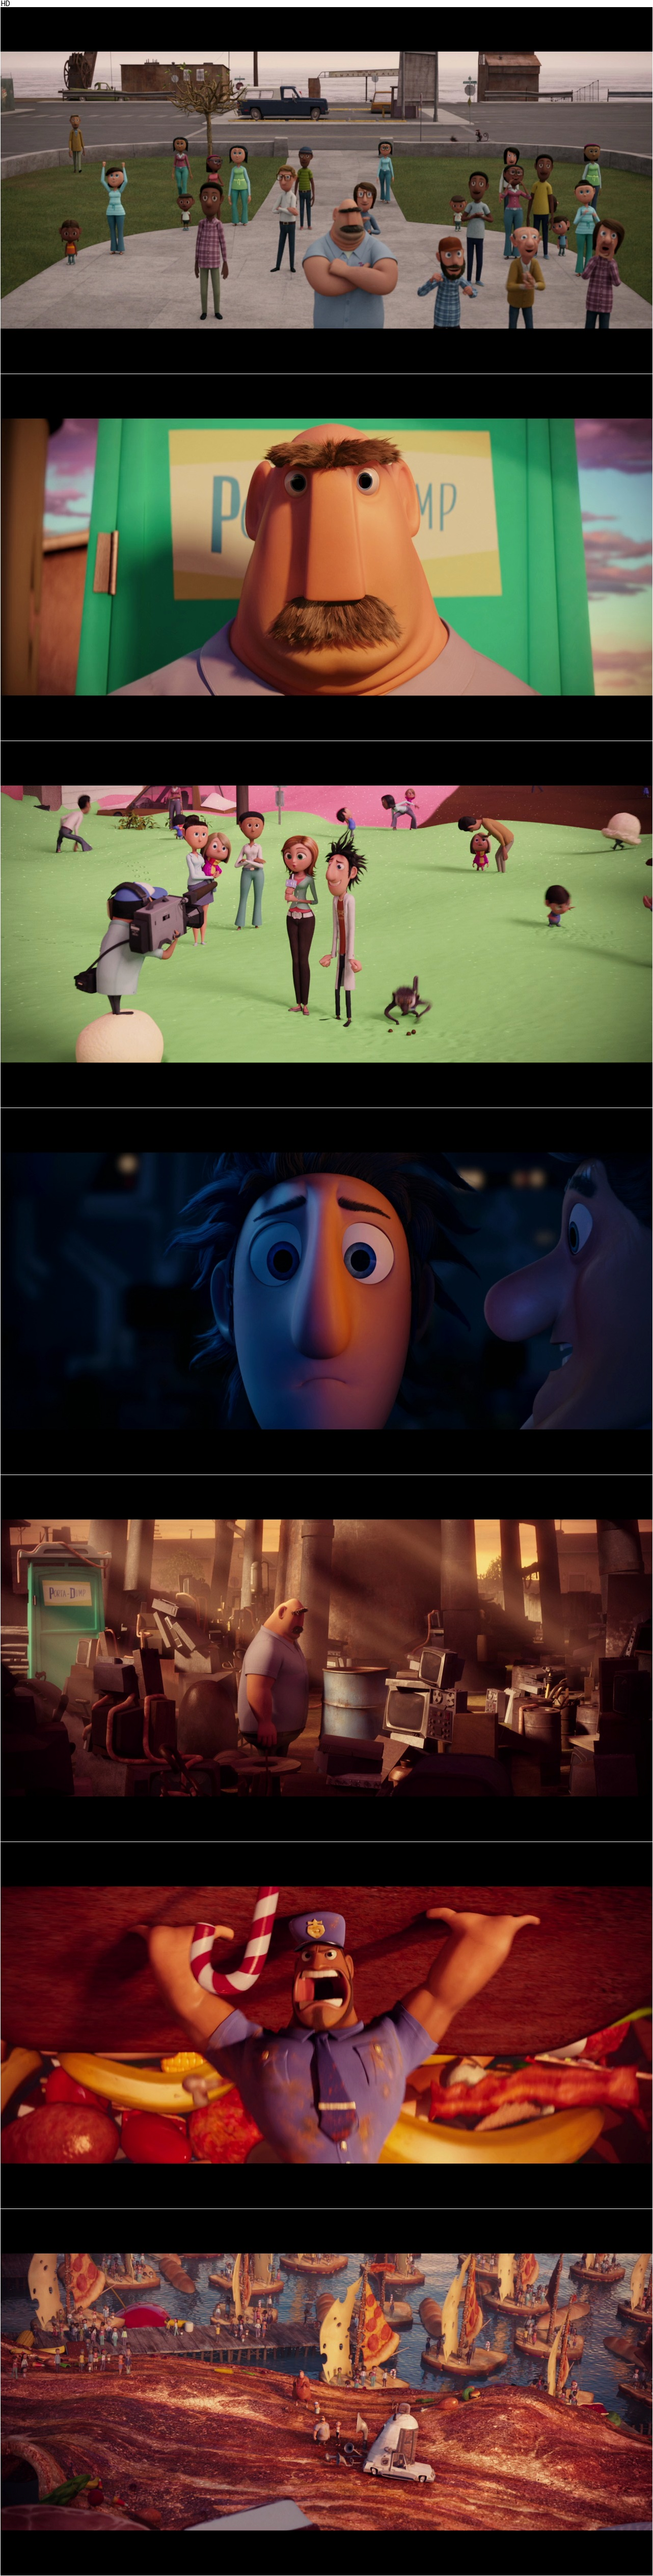 Cloudy With A Chance Of Meatballs 2009 Avaxhome